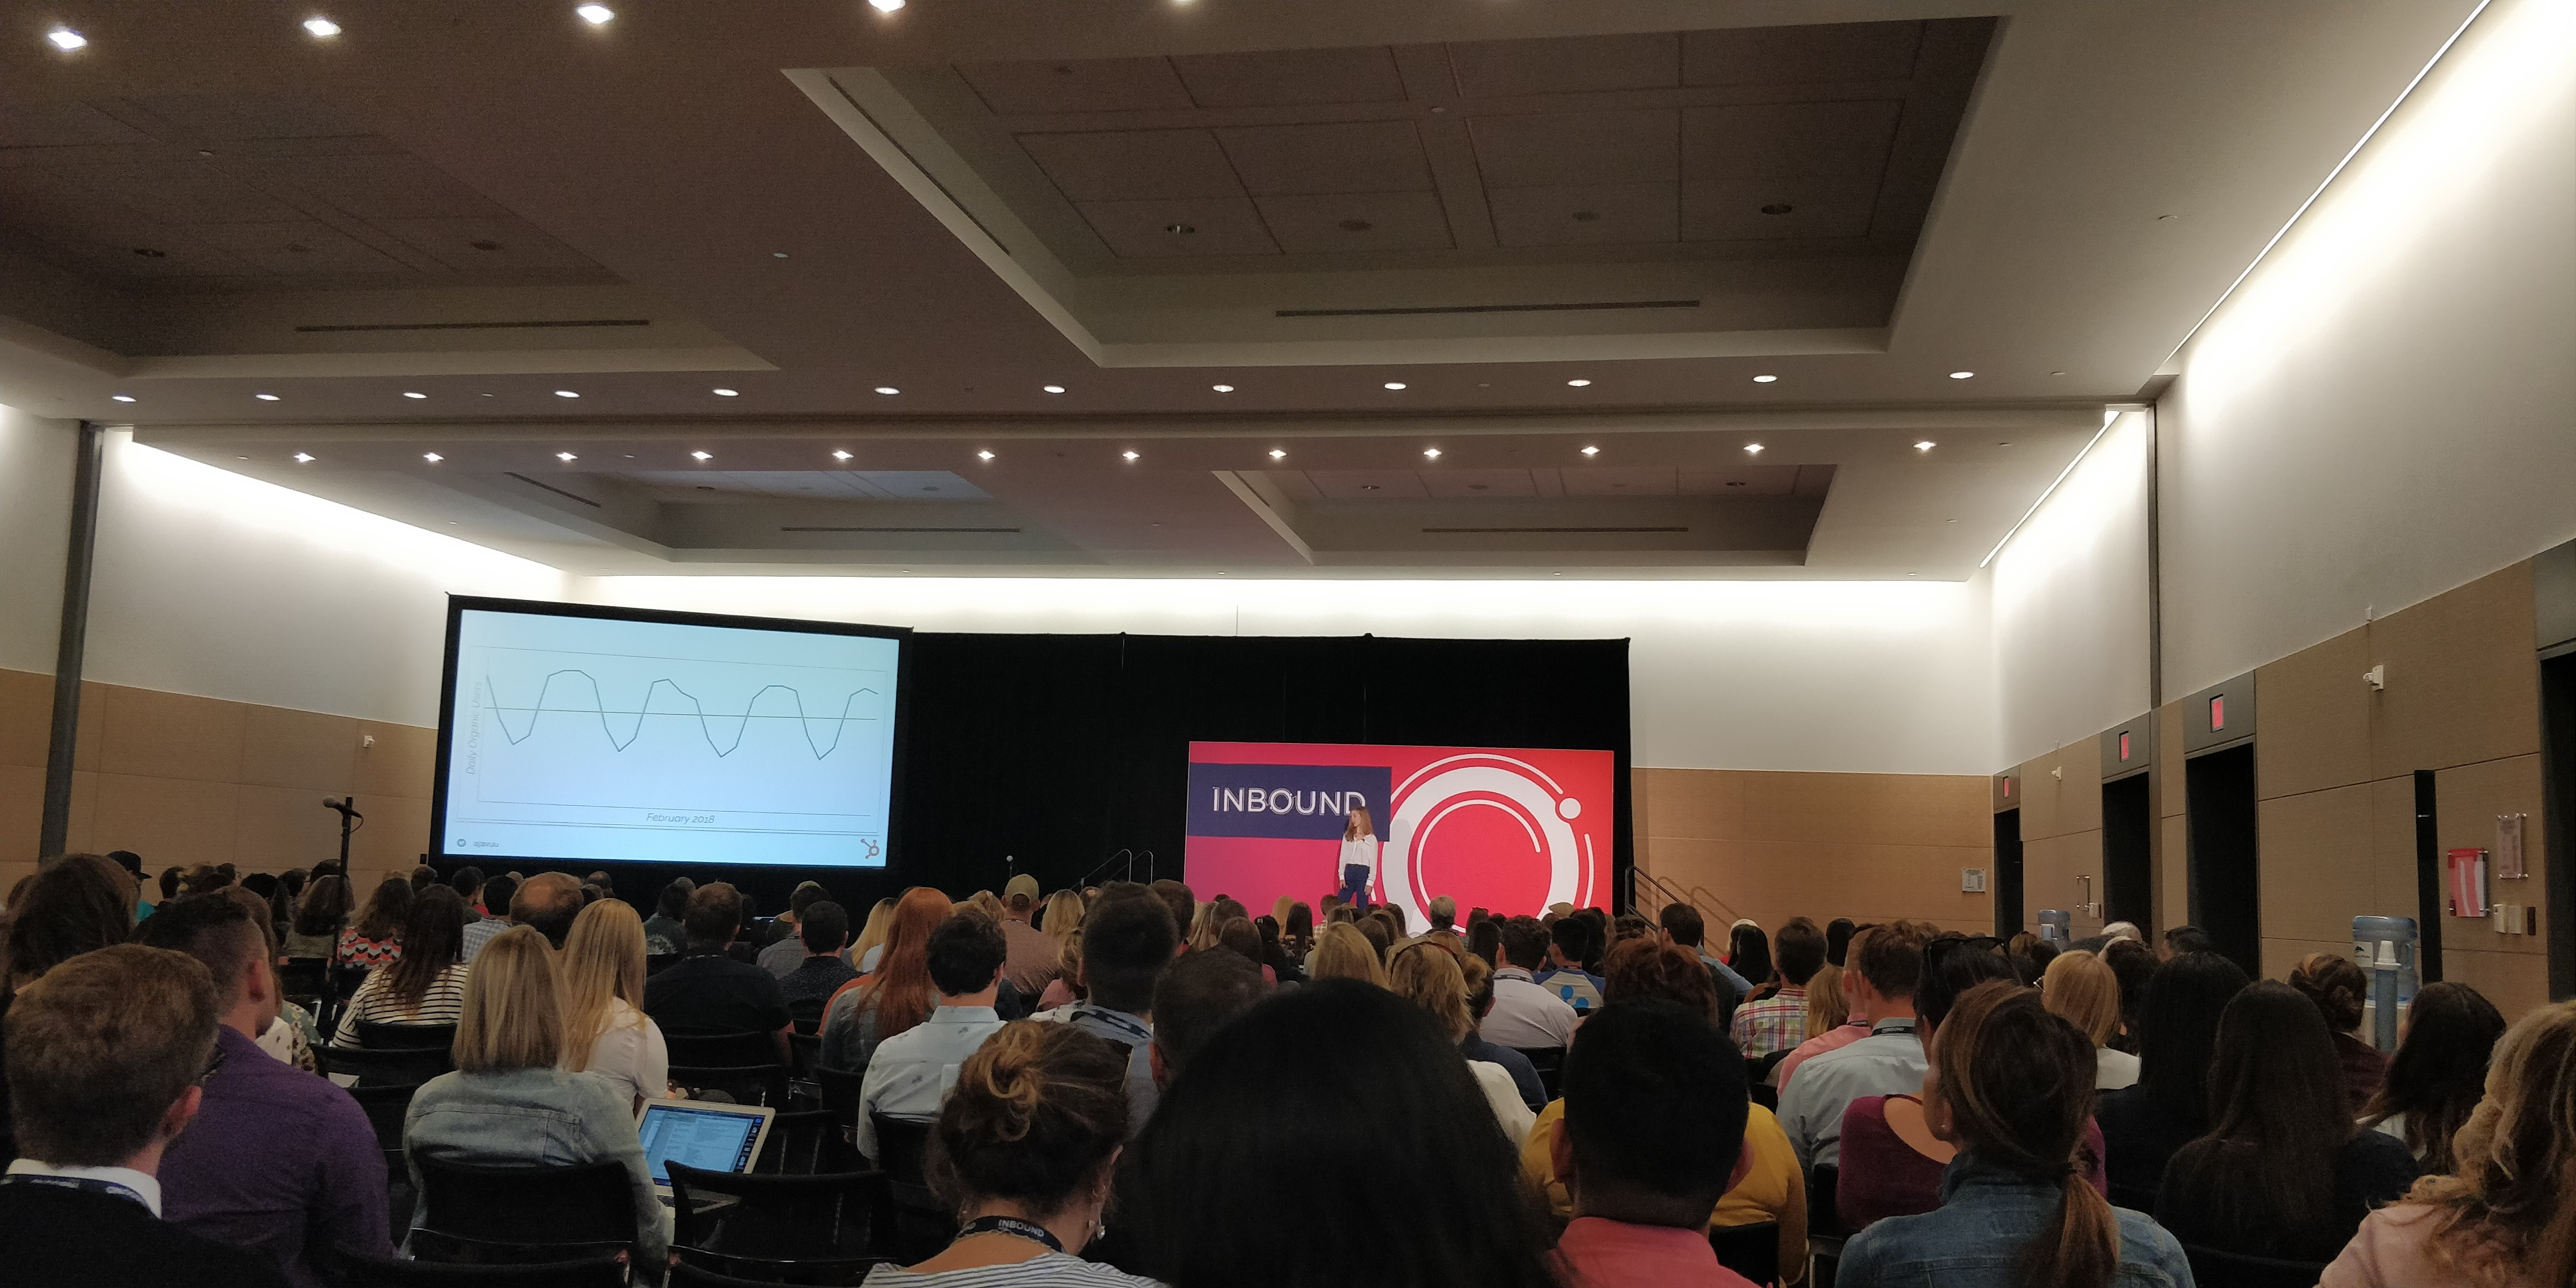 Insynth @INBOUND19 - How We Grew HubSpot's Monthly Organic Traffic by 3.2 Million In 1 Year